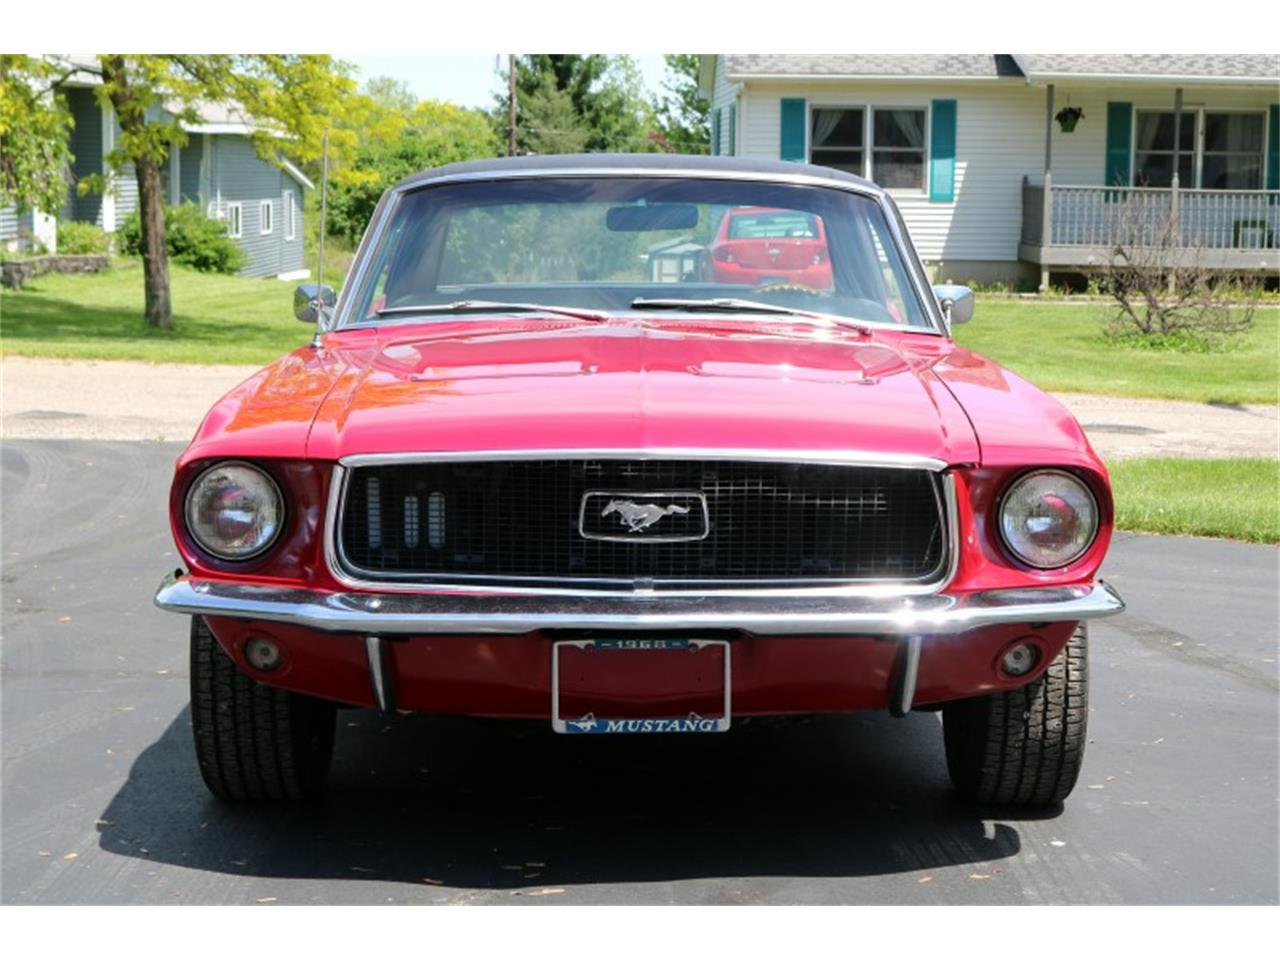 Large Picture of '68 Ford Mustang located in Romeo Michigan - $11,900.00 - QB37